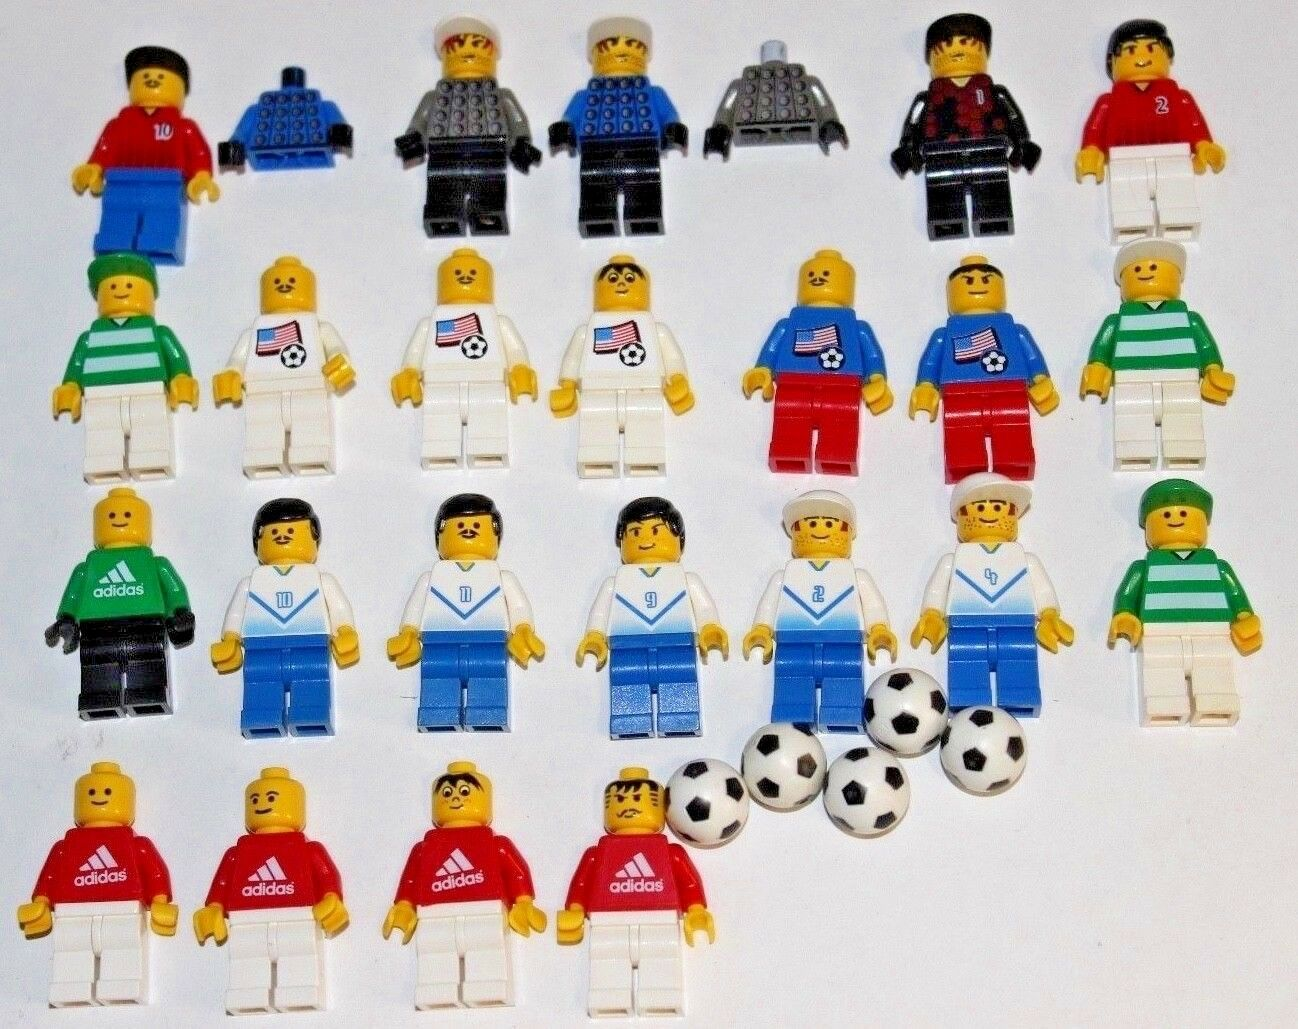 LEGO Lot - Soccer, Football Minifigures Adidas, & Balls - Adidas, Minifigures USA Nationals, Goalies 6ca9d4